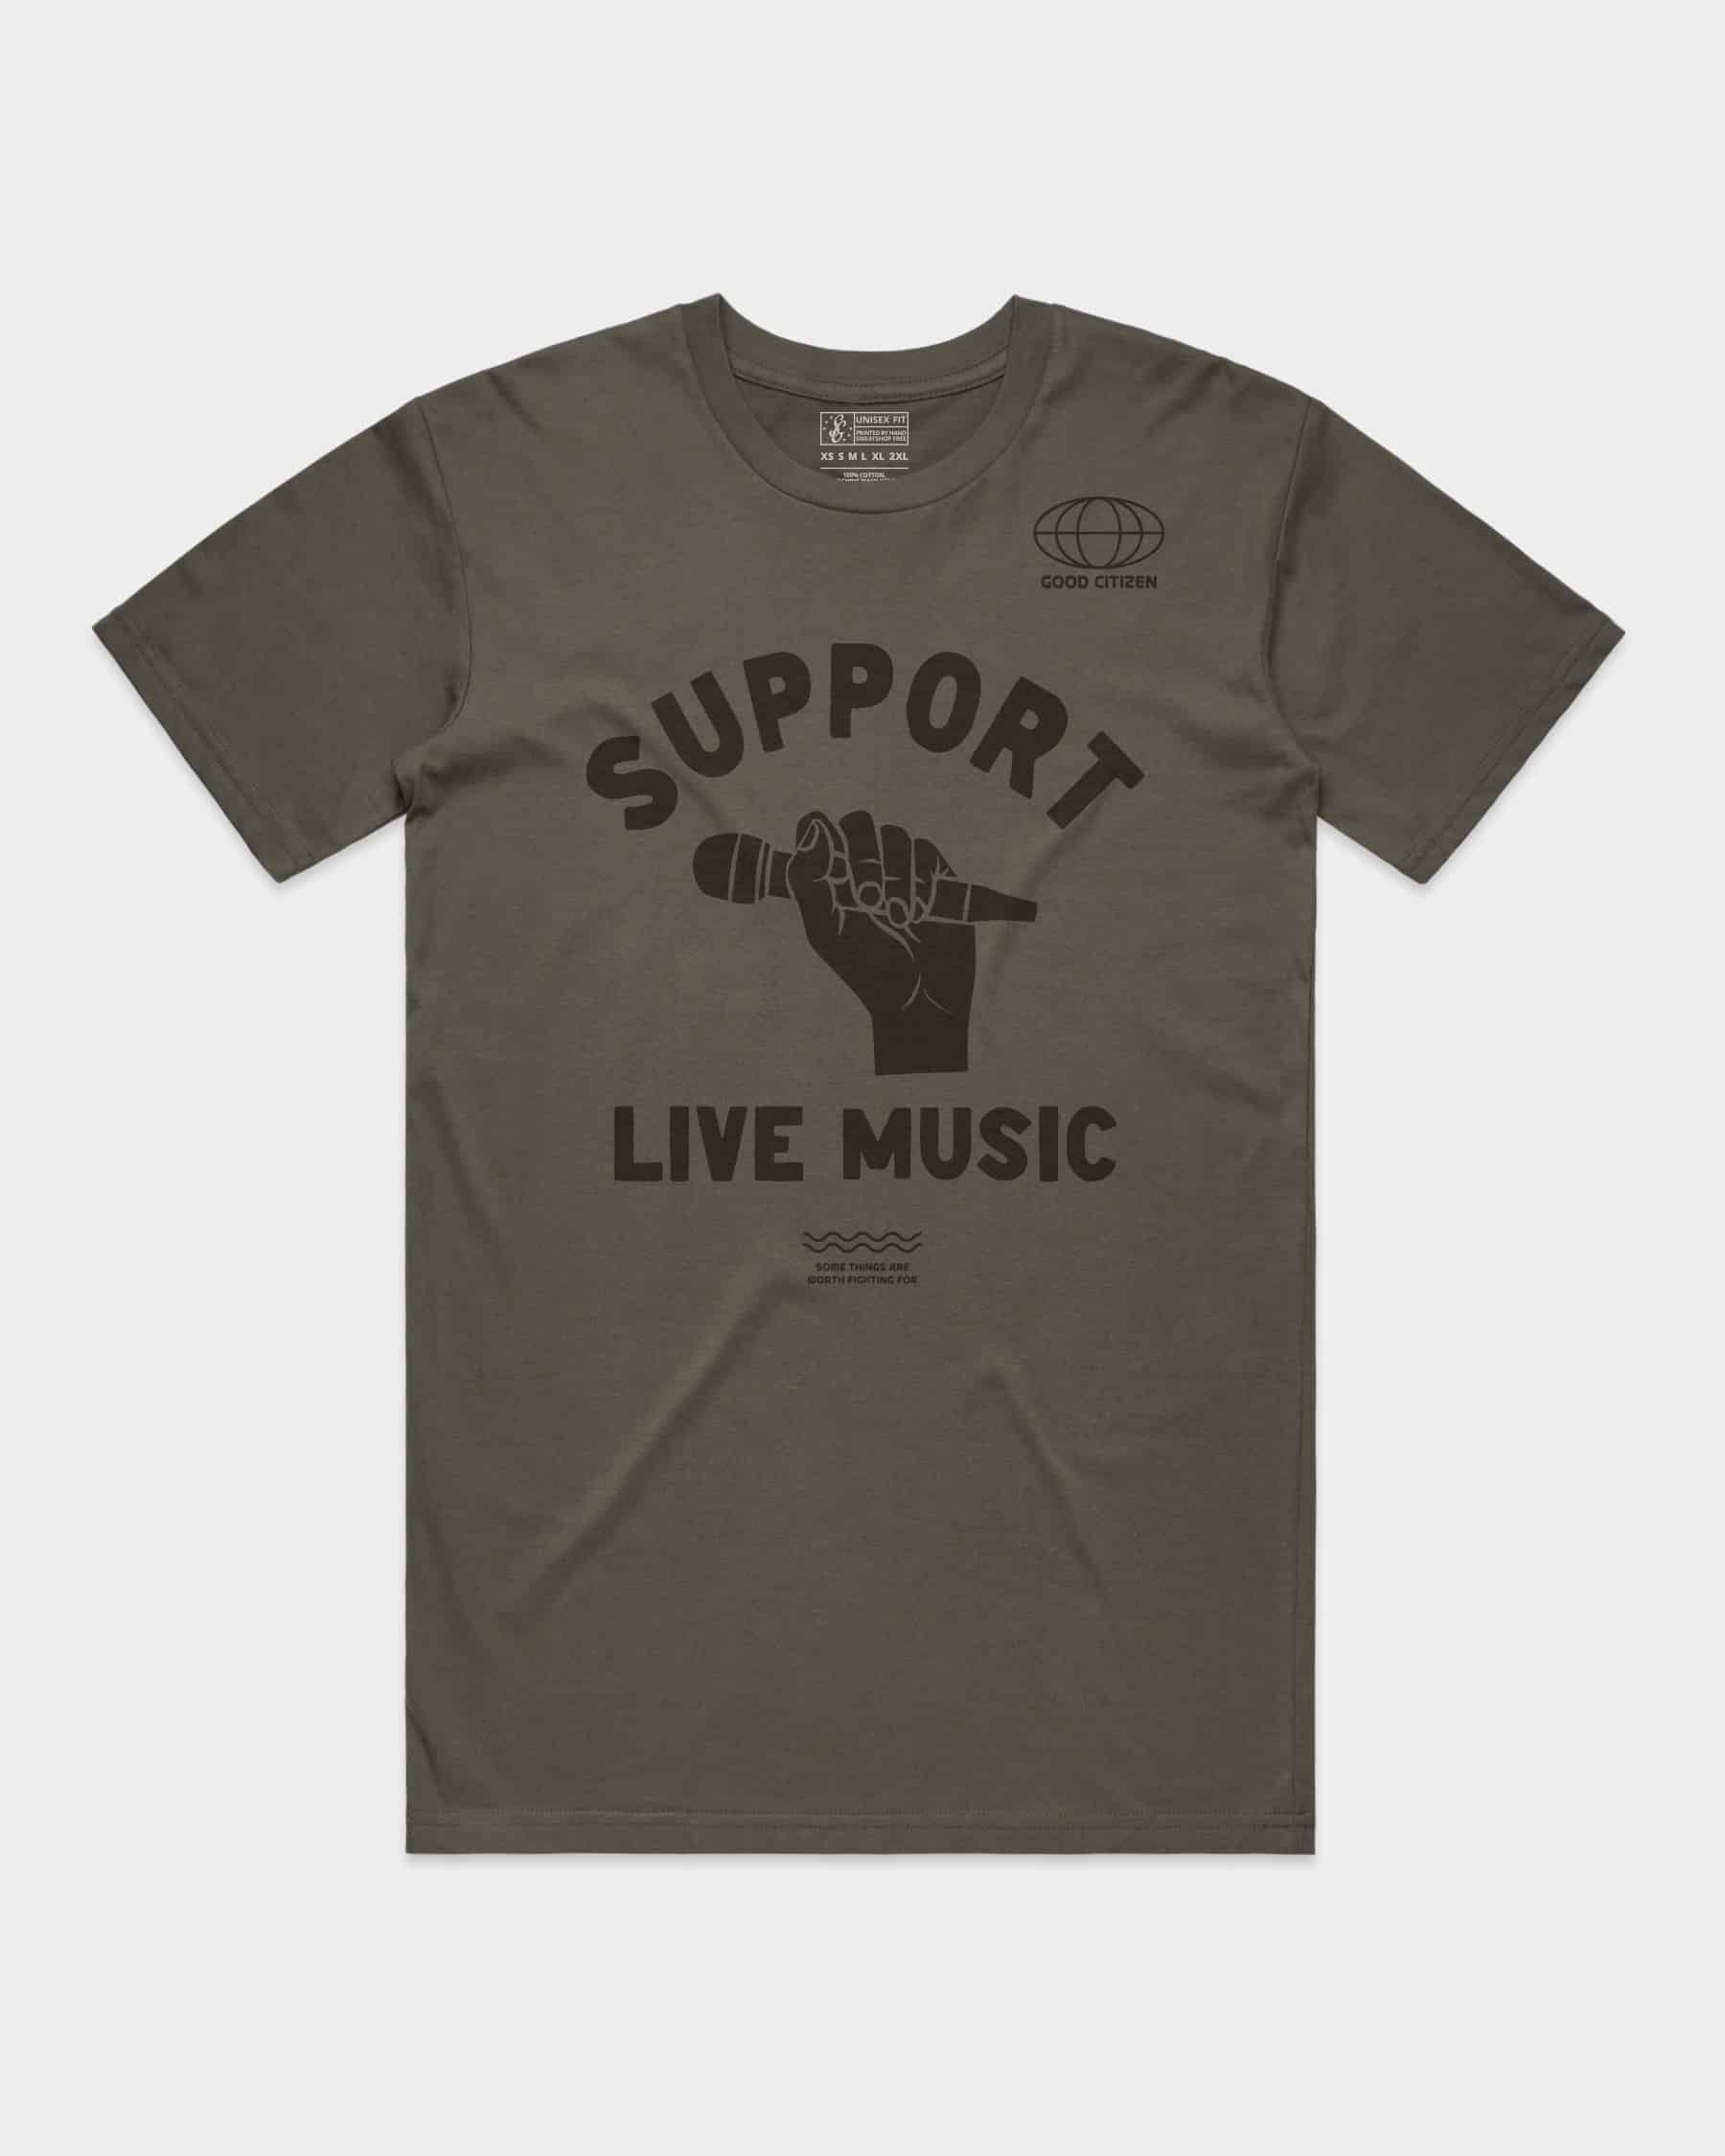 SOLIDARITY SERIES No. 4: Support Live Music Tee